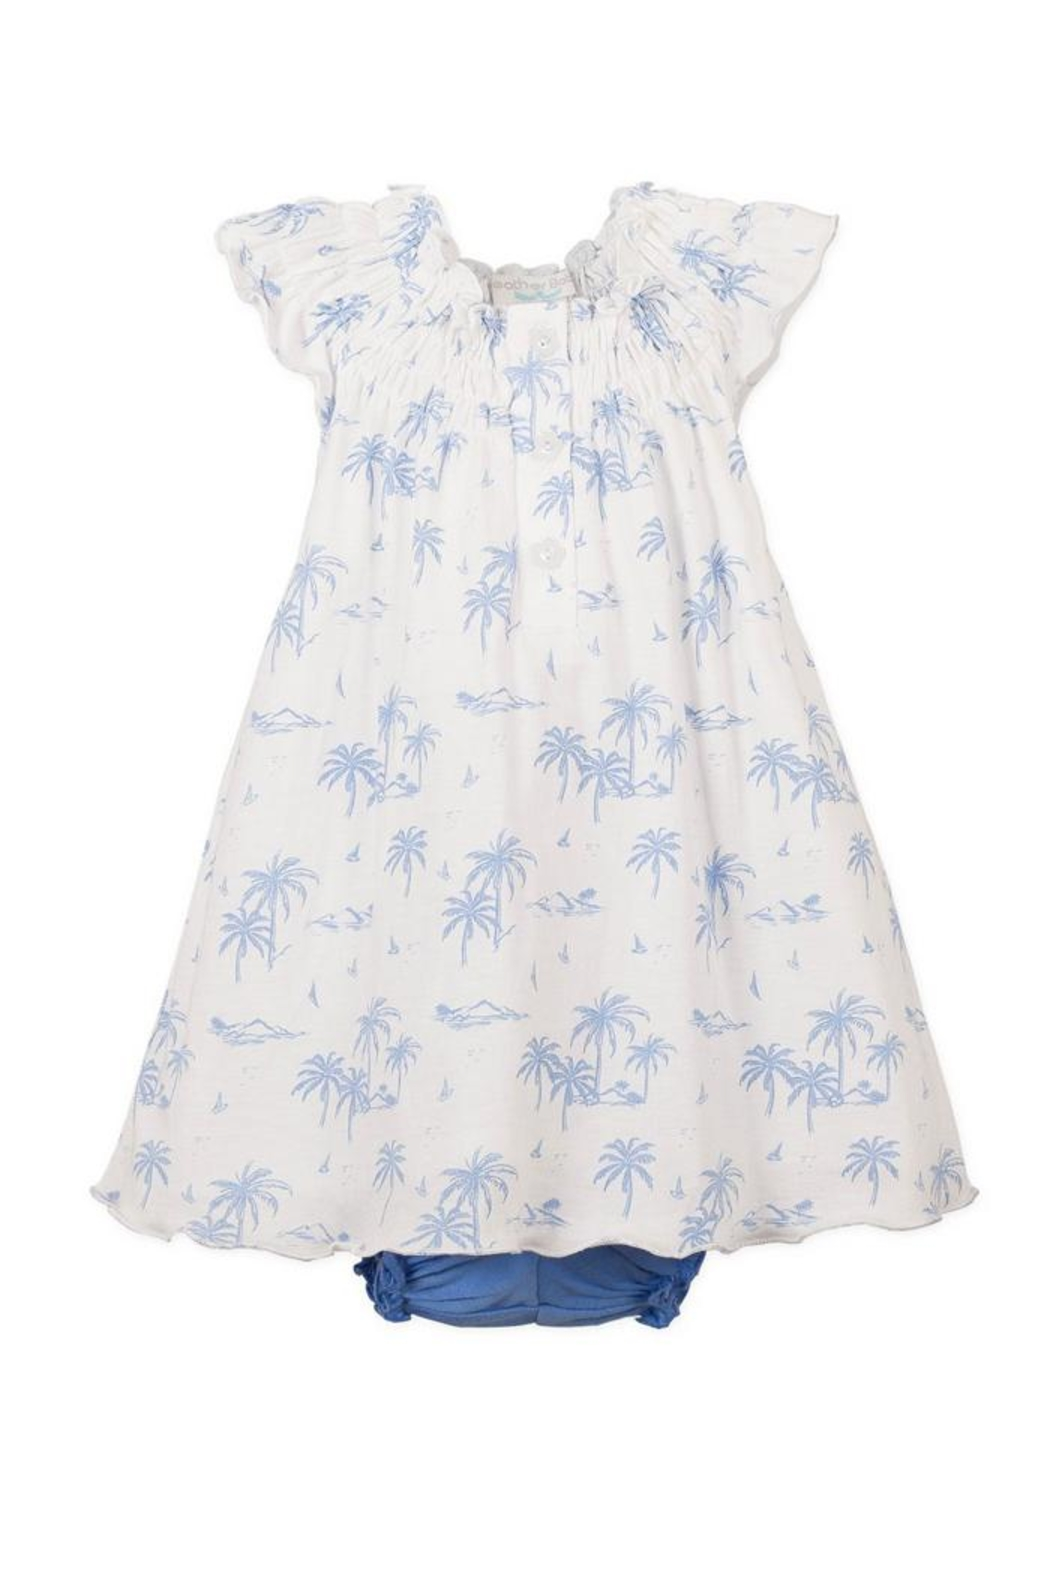 Feather Baby Hawaii Henley-Bloomer Dress - Main Image